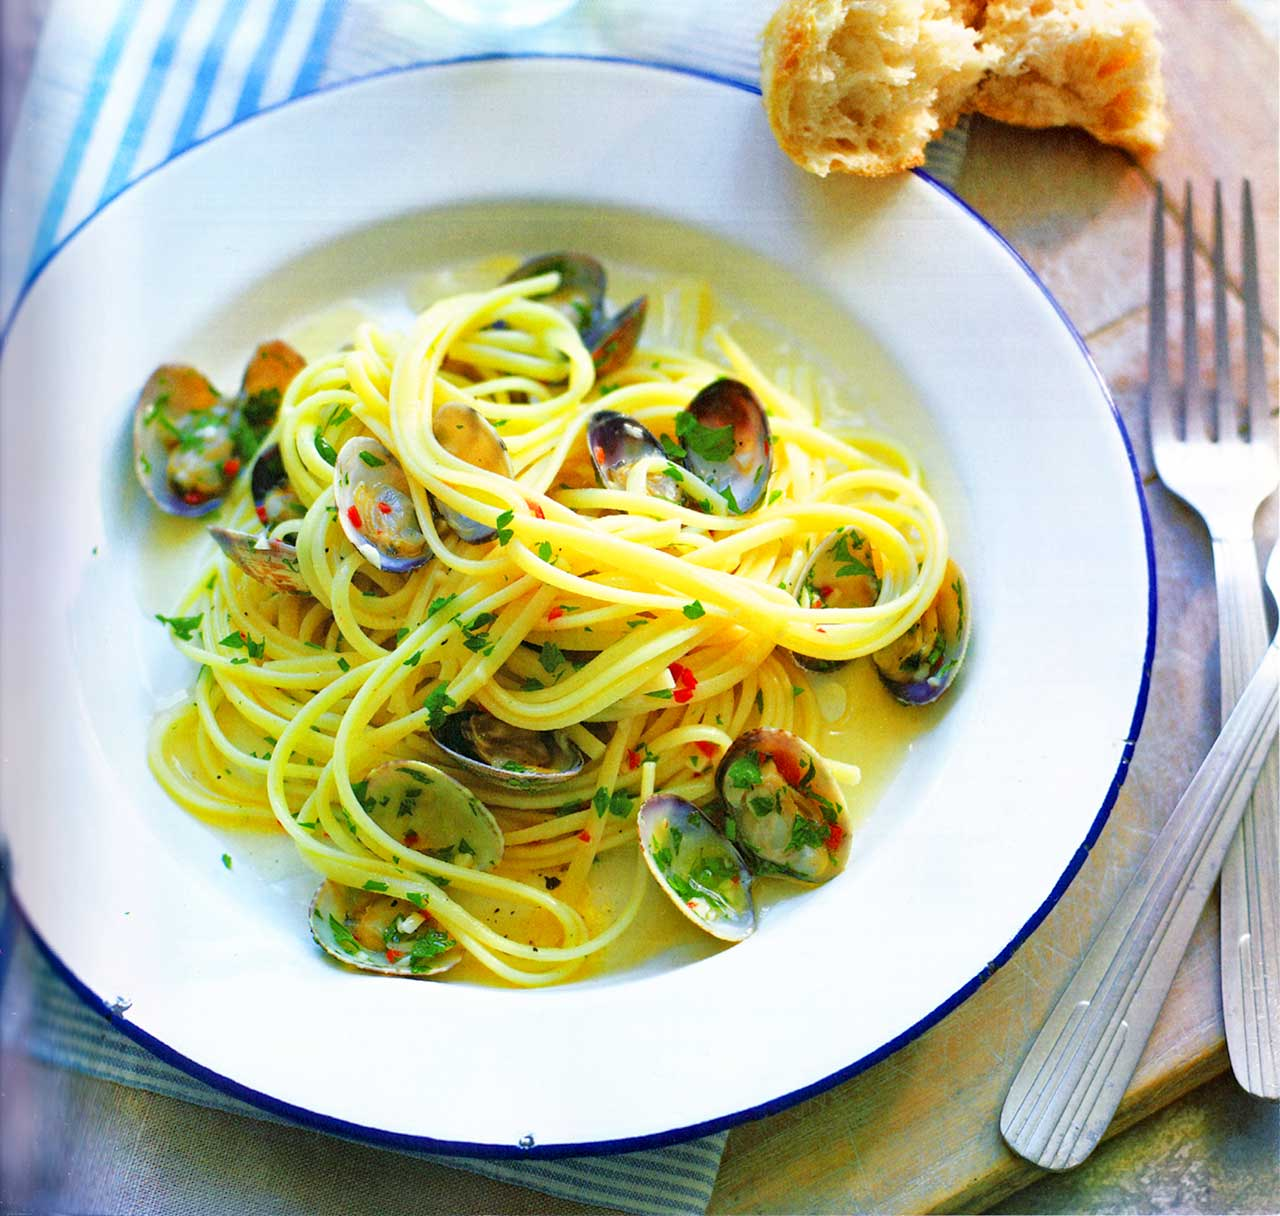 Clams with linguine pasta-linguine with clams recipe